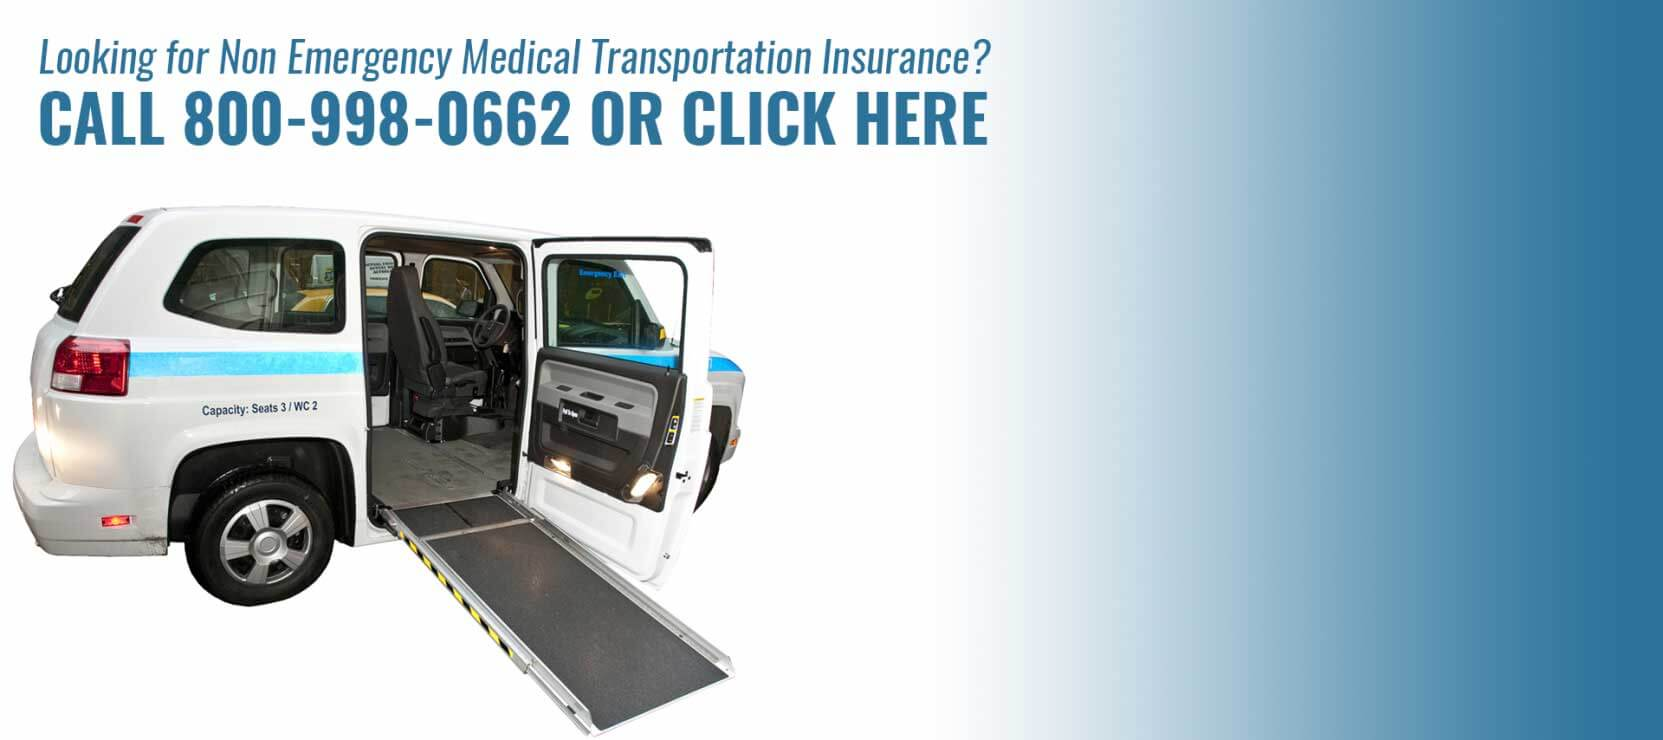 Non-emergency-medical-transportation-pathway-slider01-1663x740_c